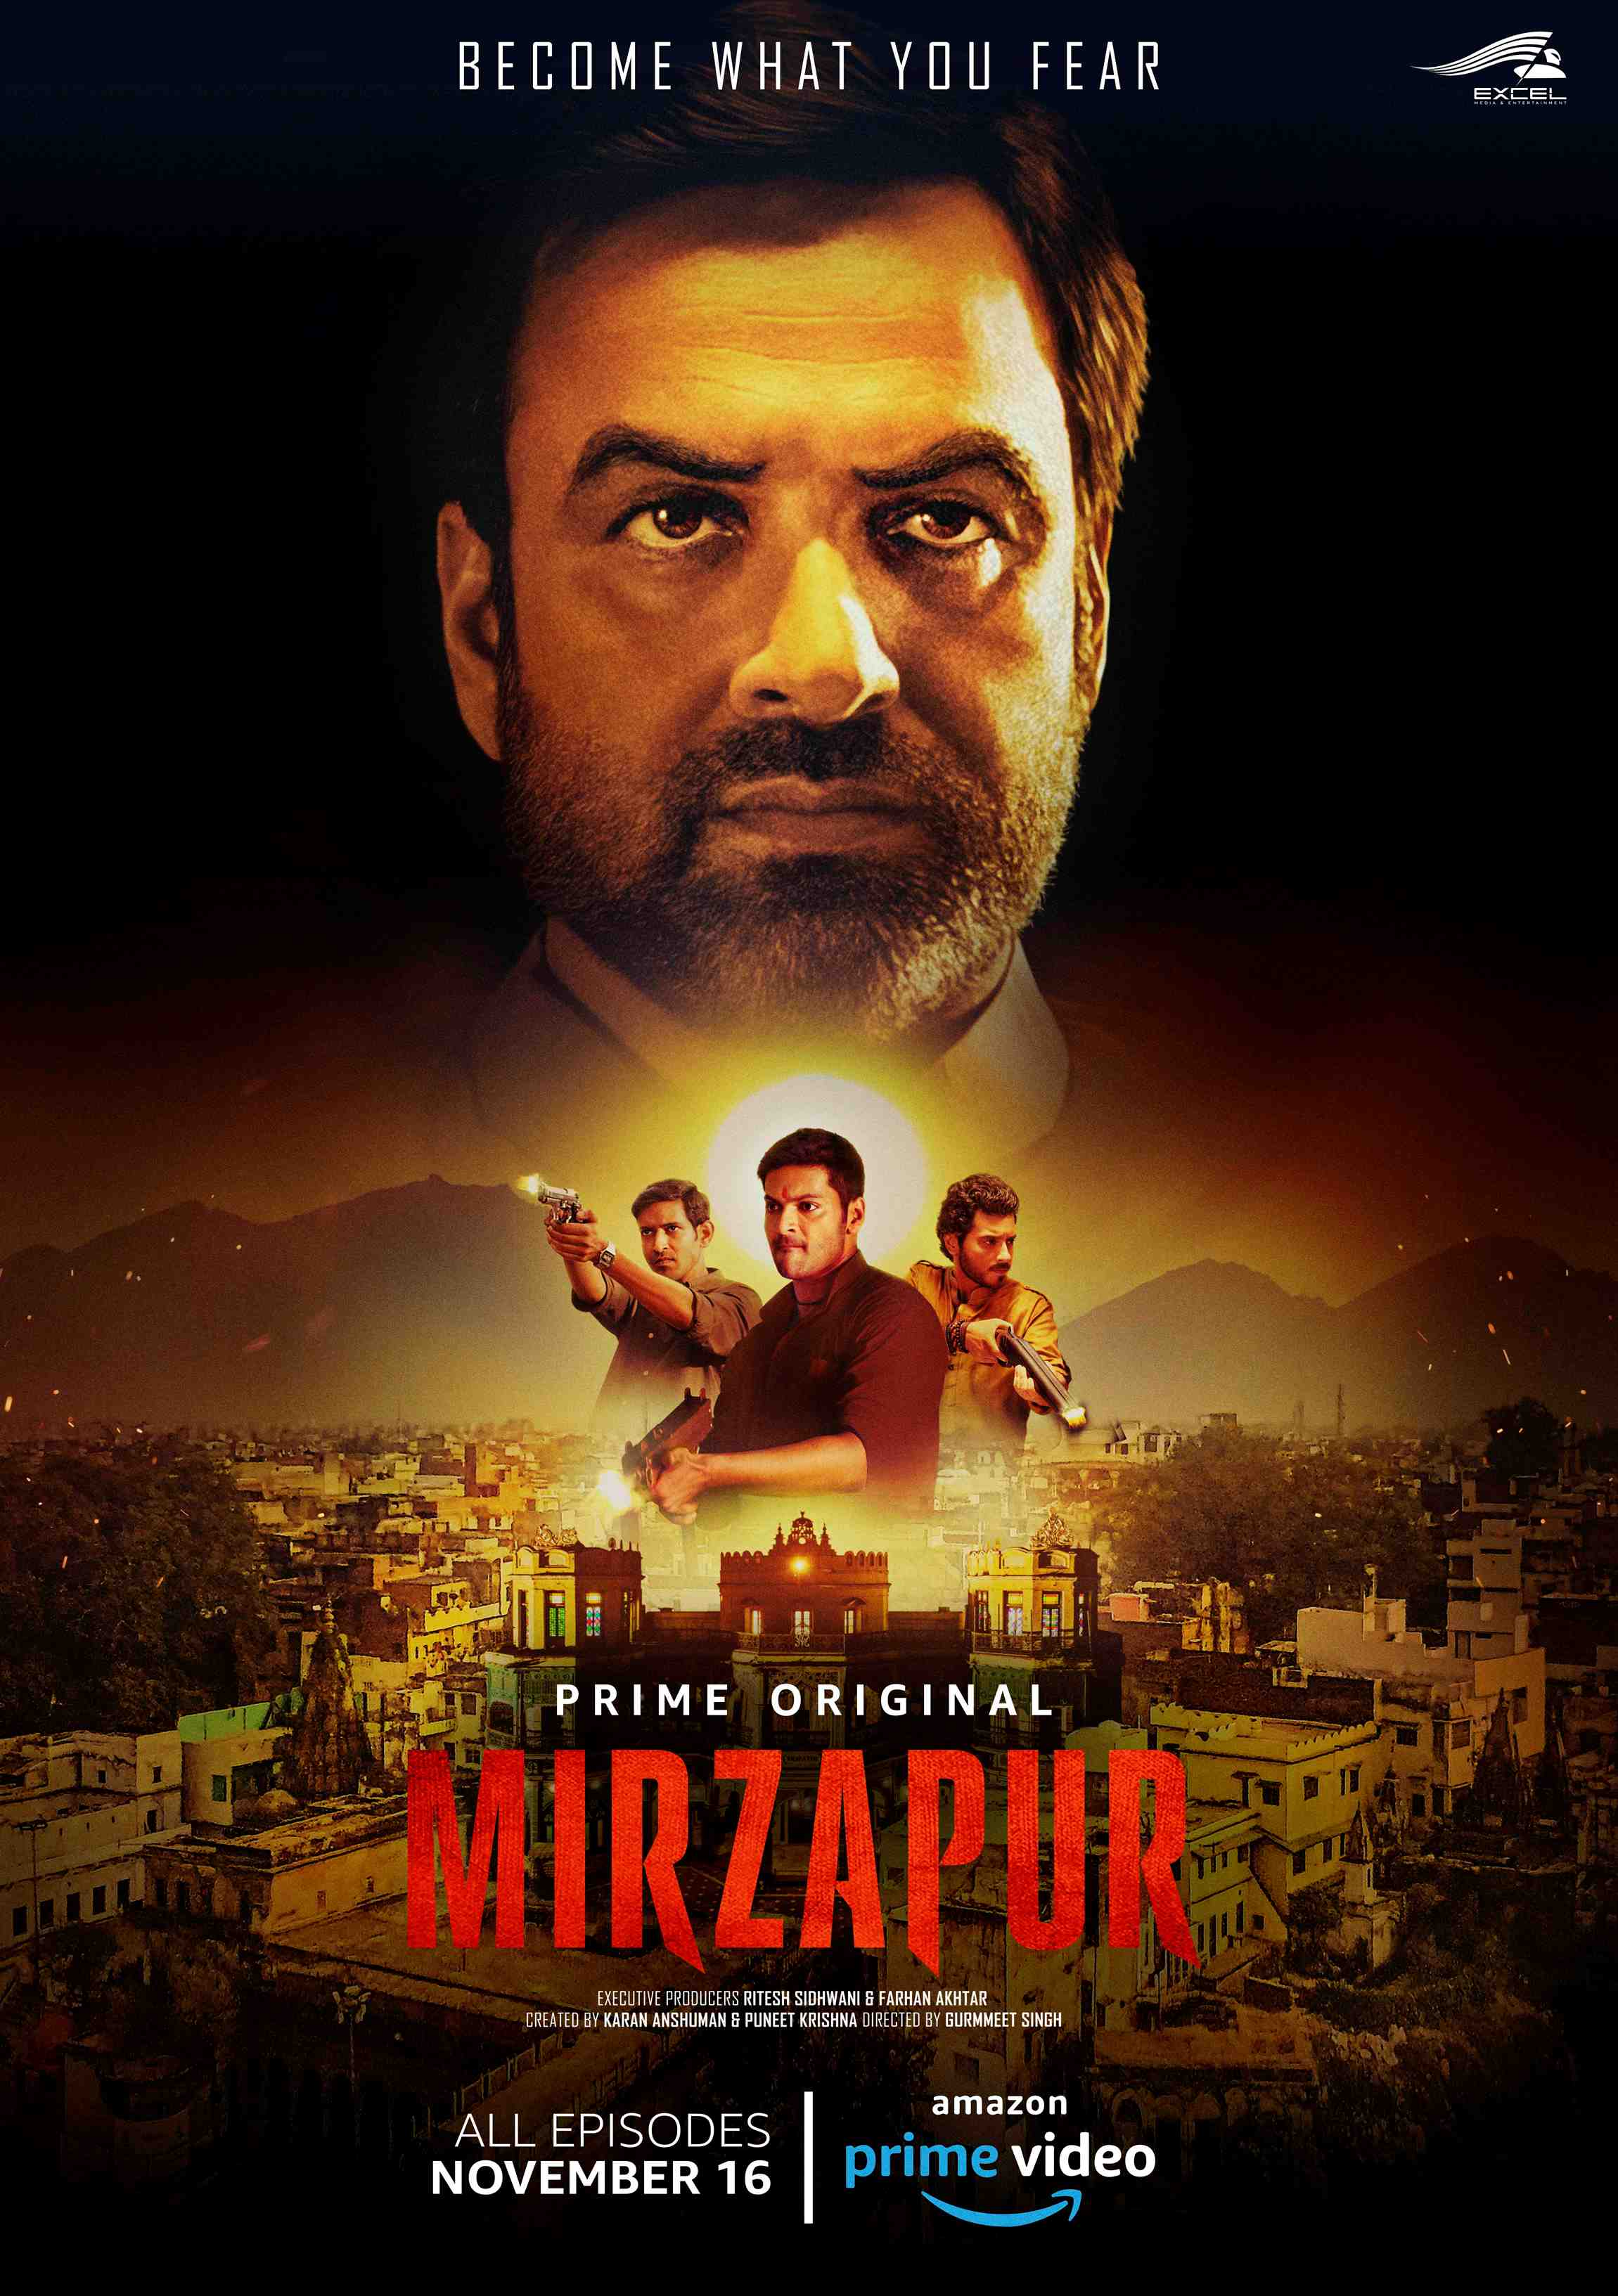 Mirzapur will be available on Amazon Prime in November